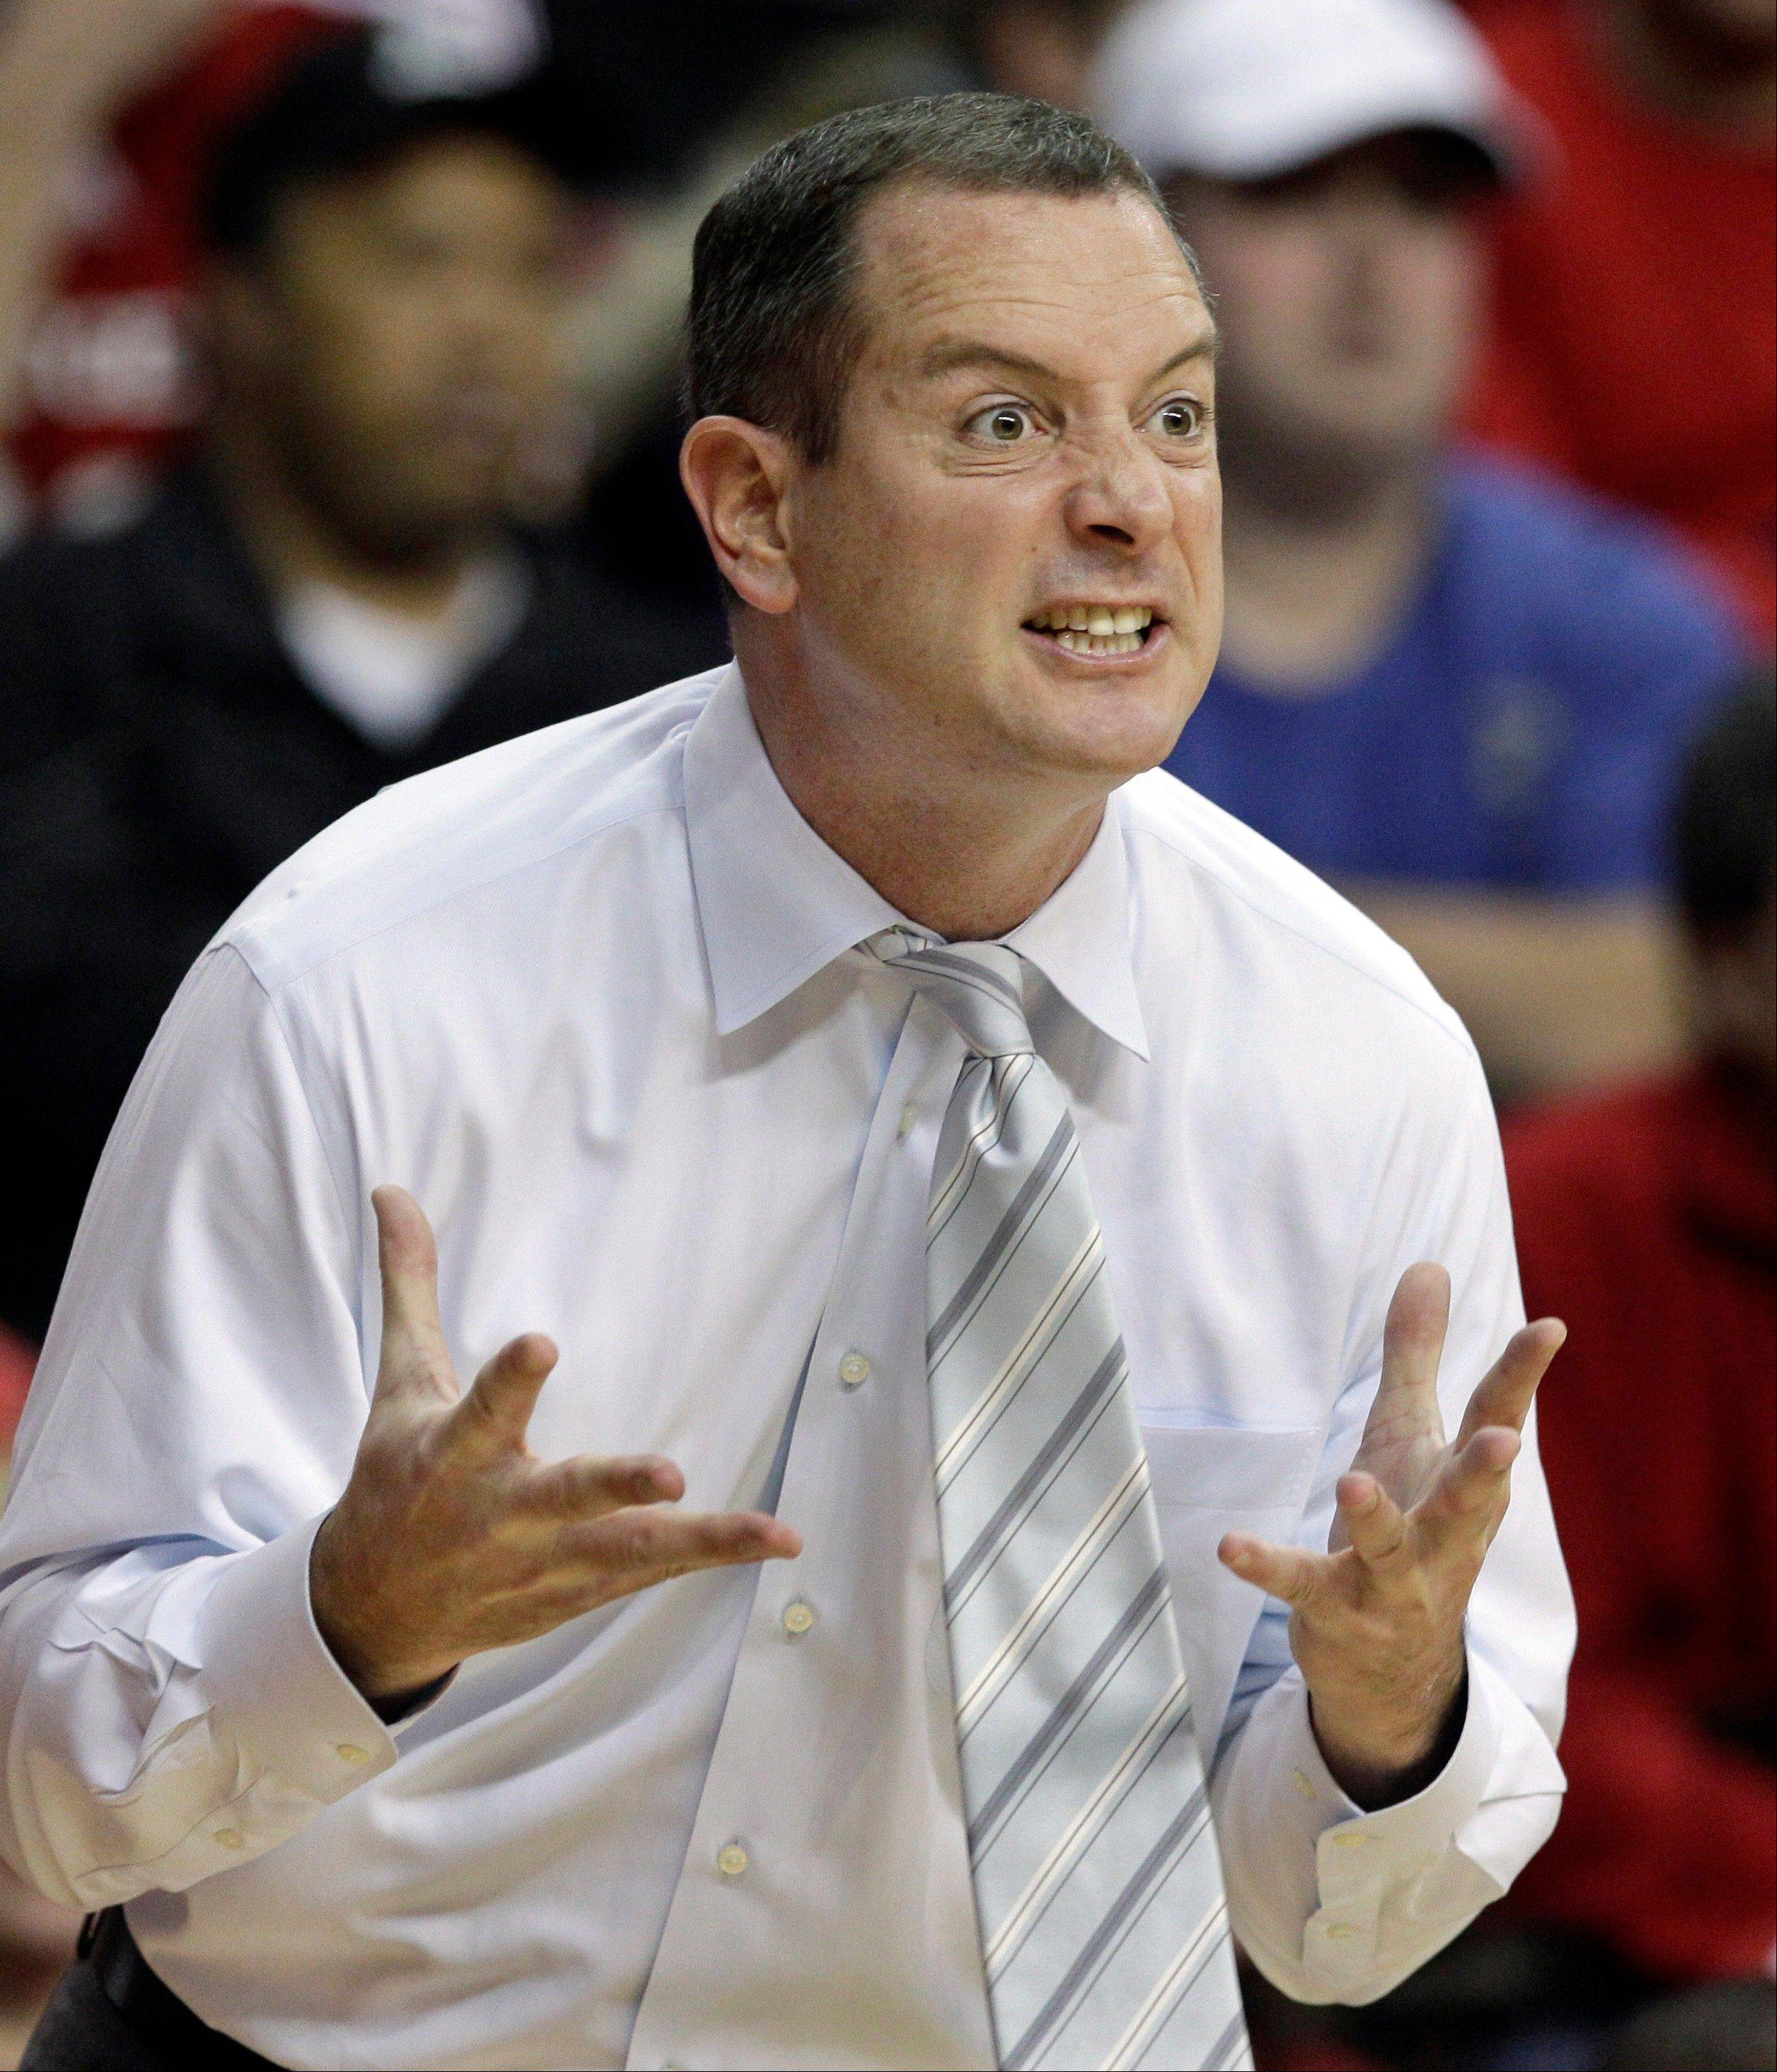 FILE - In this Jan. 7, 2012, file photo, Rutgers coach Mike Rice reacts to play during an NCAA college basketball game against Connecticut in Piscataway, N.J. The airing Tuesday, April 2, 2013, of a videotape of Rice using gay slurs, shoving and grabbing his players and throwing balls at them in practice over the past three seasons has Rutgers athletic director Tim Pernetti reconsidering his decision not to fire the coach. Pernetti was given a copy of the video in late November by a disgruntled former employee, and he suspended Rice for three games, fined him $50,000 and made him undergo anger management classes for inappropriate behavior after investigating it.